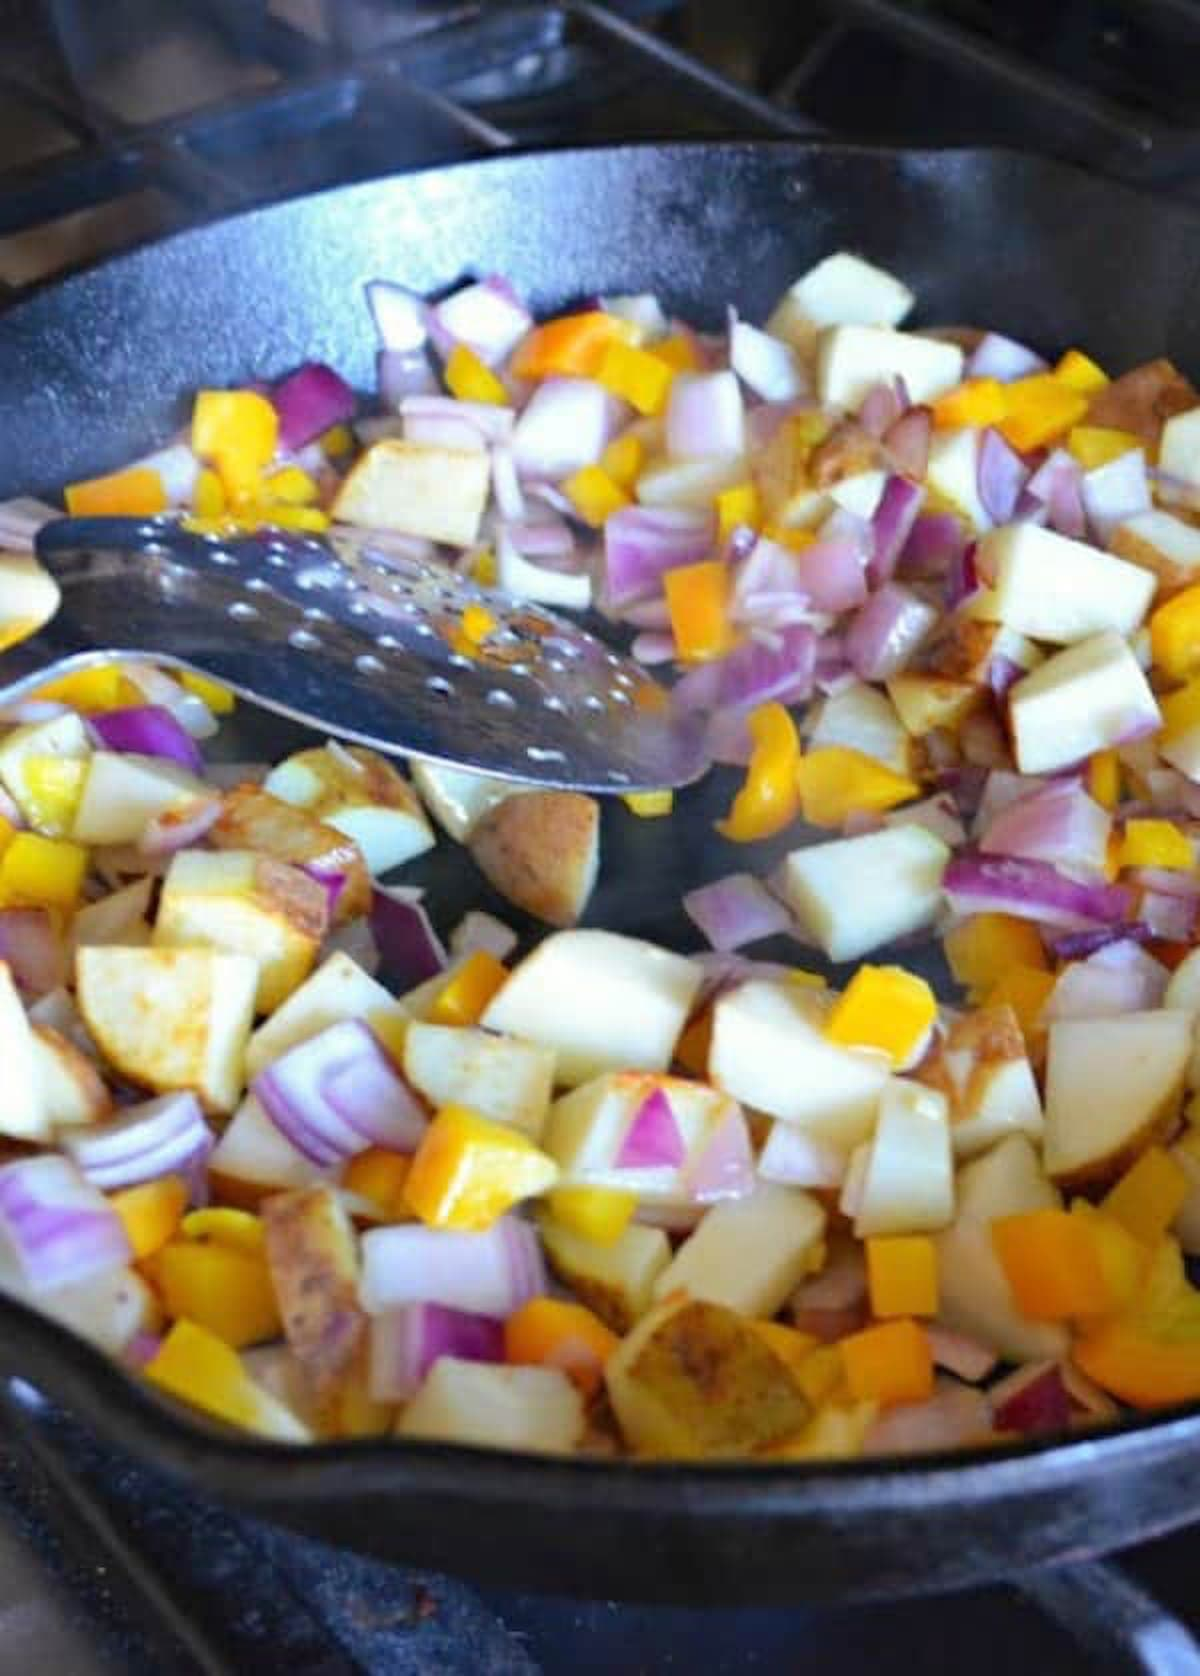 Browning cubed potatoes, onions and bell pepper in a cast iron pan for Breakfast Burritos Recipe.